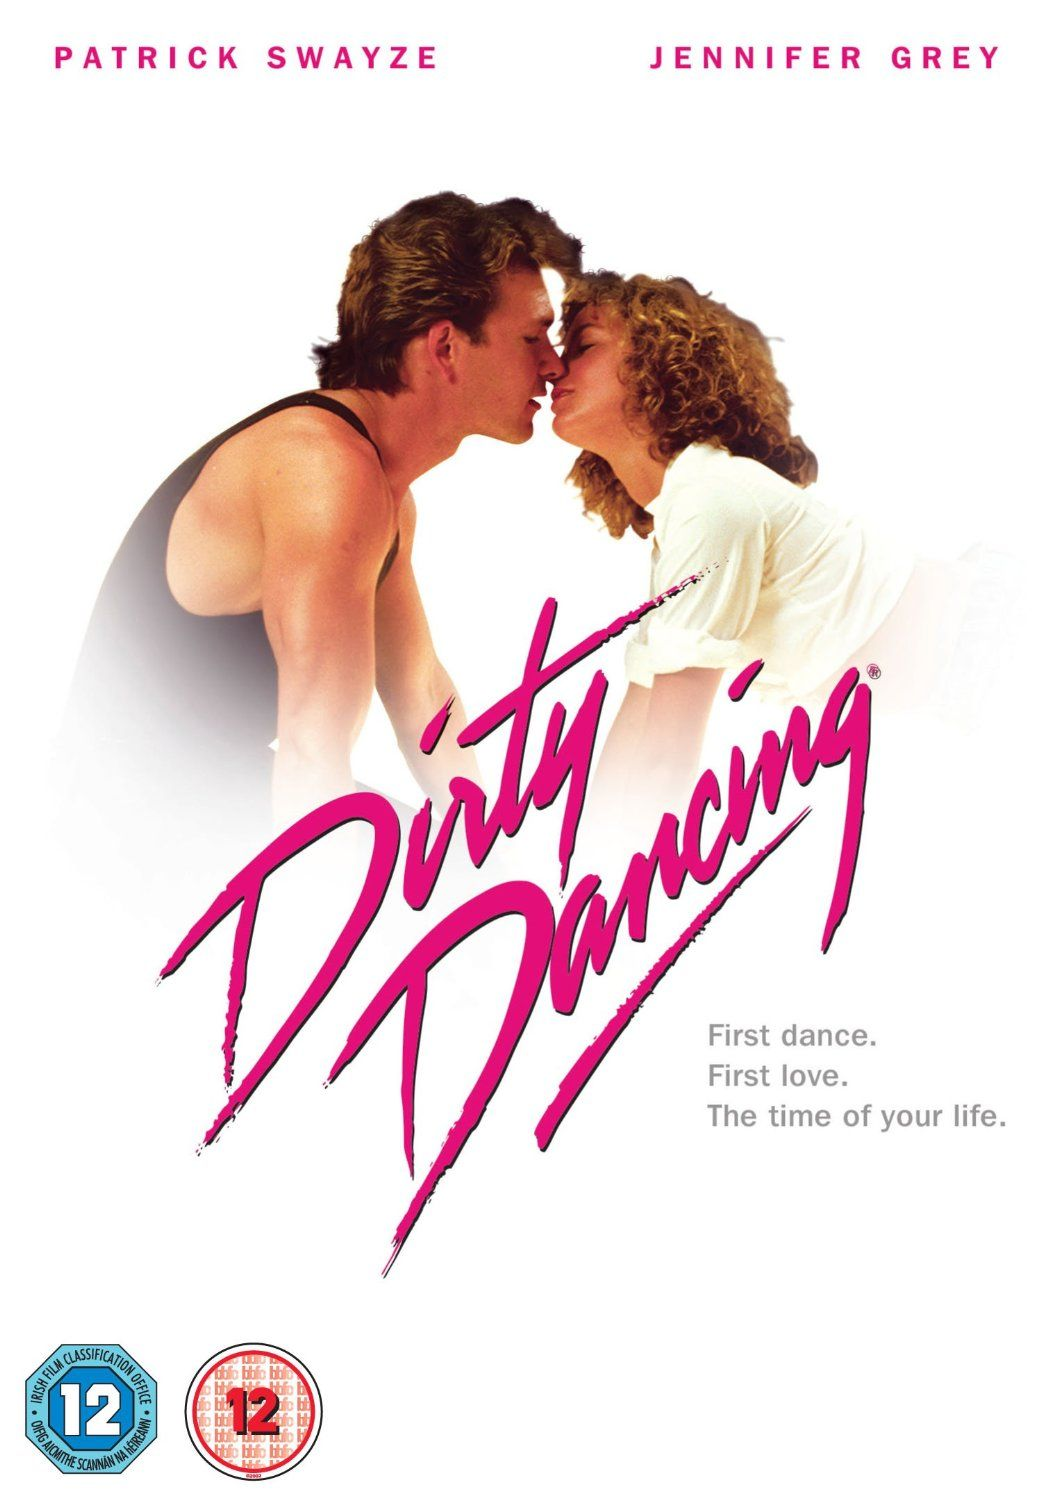 Dirty dancing moviescenes pinterest - Pelicula dirty dancing ...